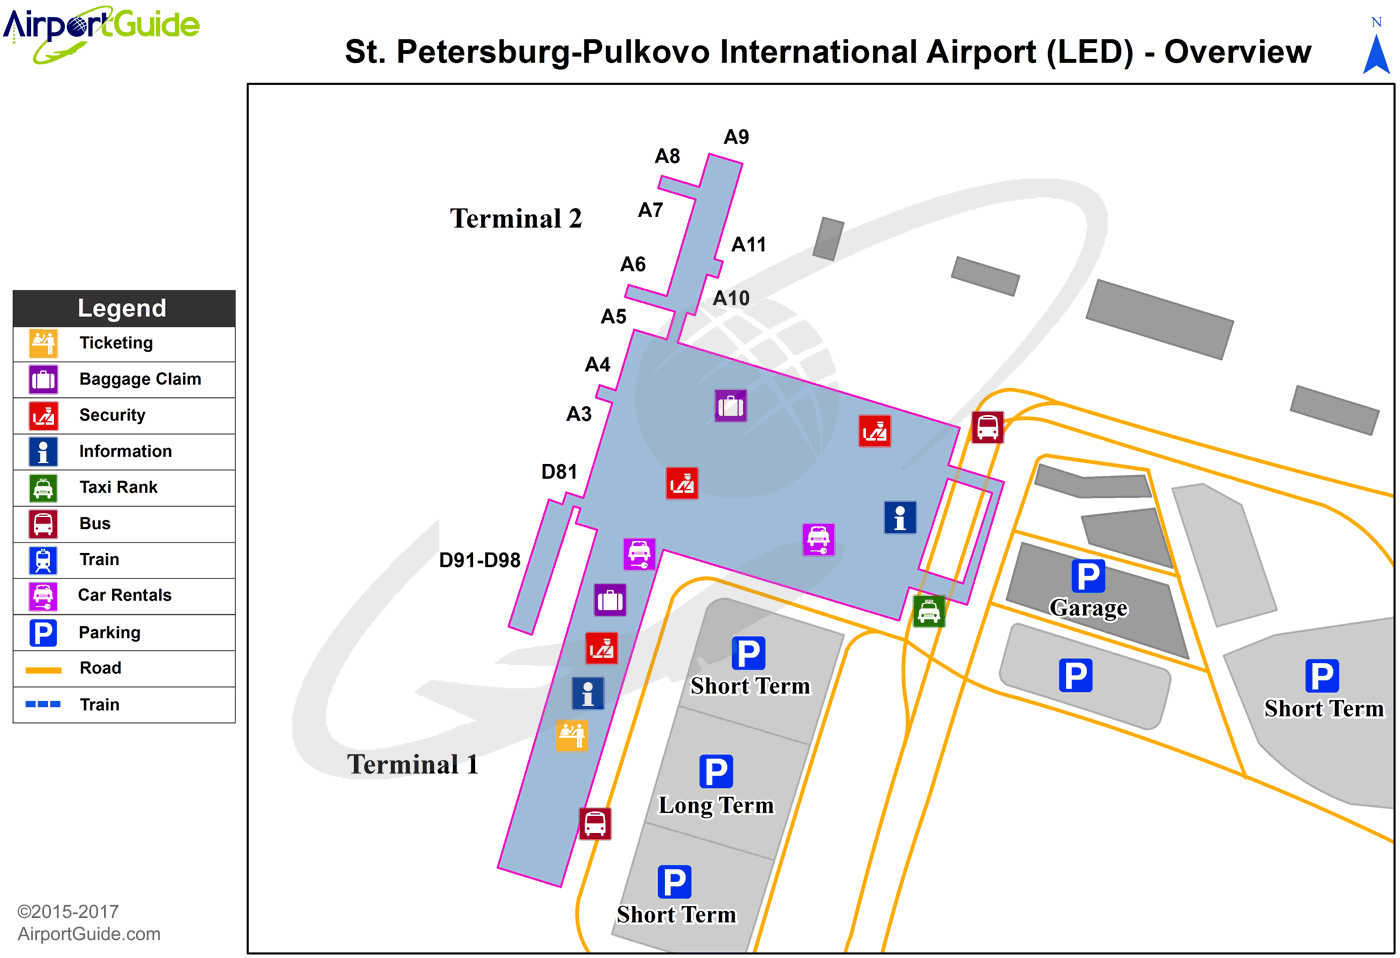 St. Petersburg - Pulkovo (LED) Airport Terminal Map - Overview